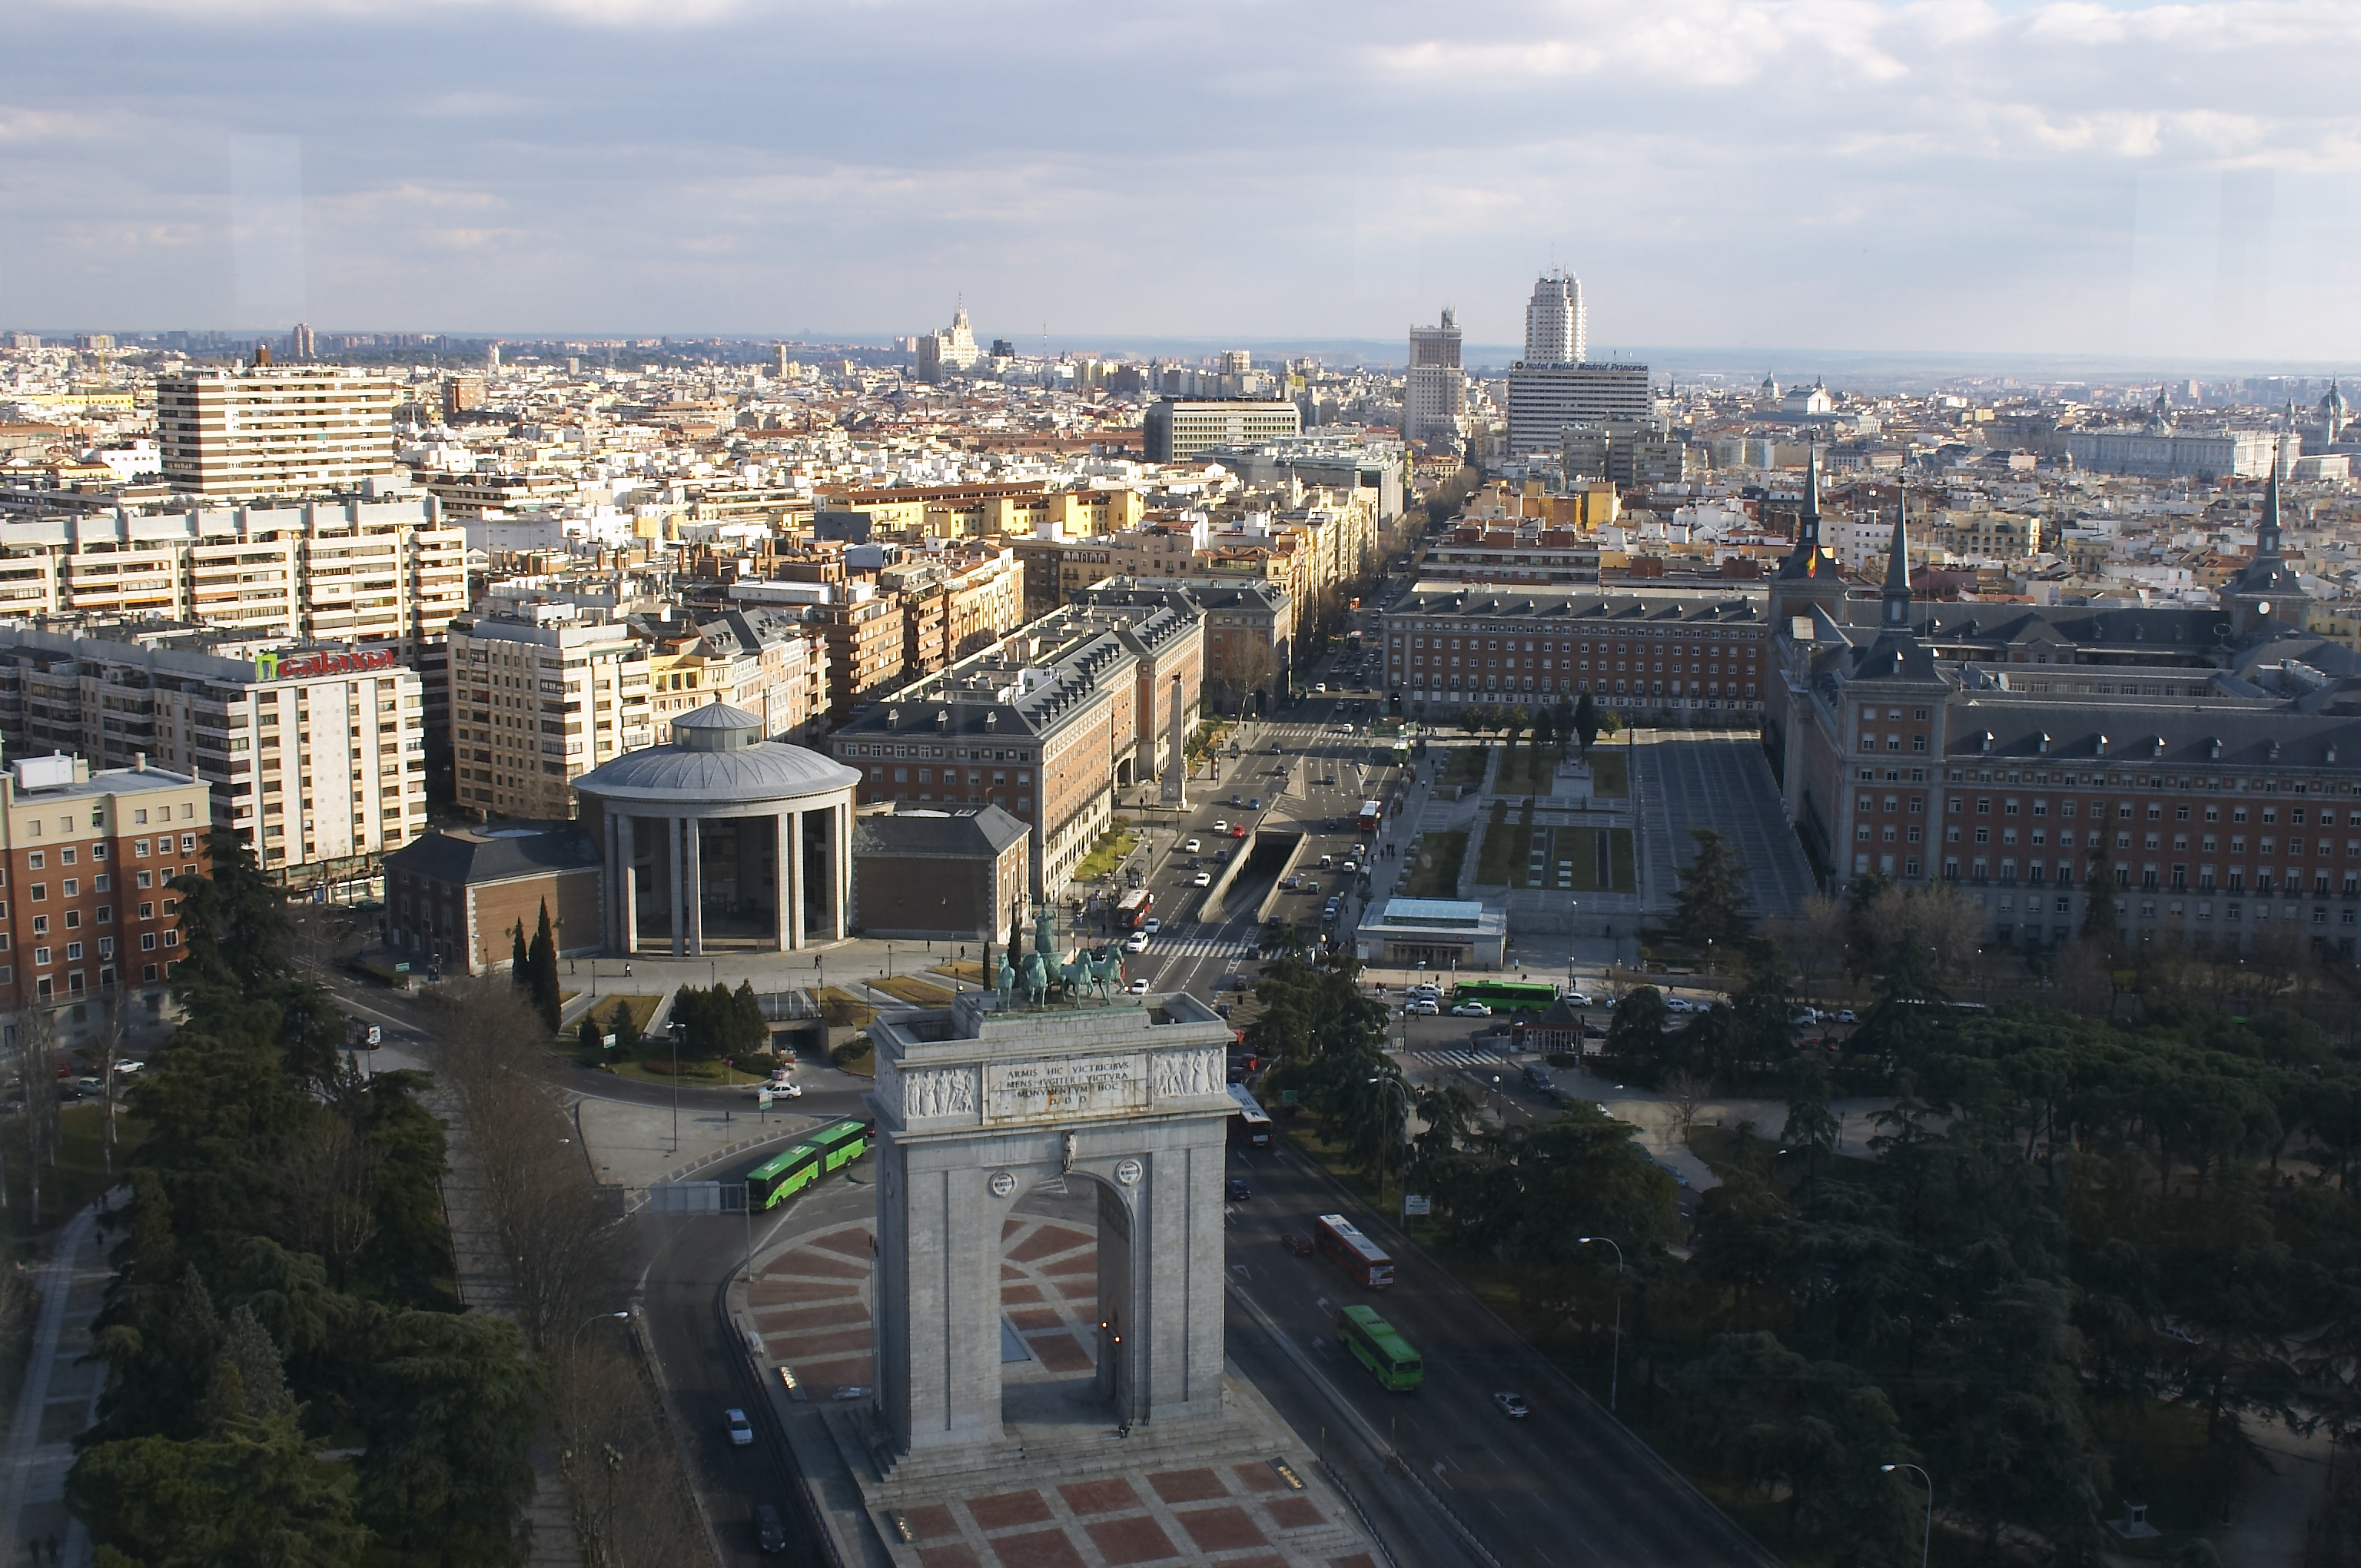 View to the south from the Faro of Moncloa | © Barcex / WikiCommons